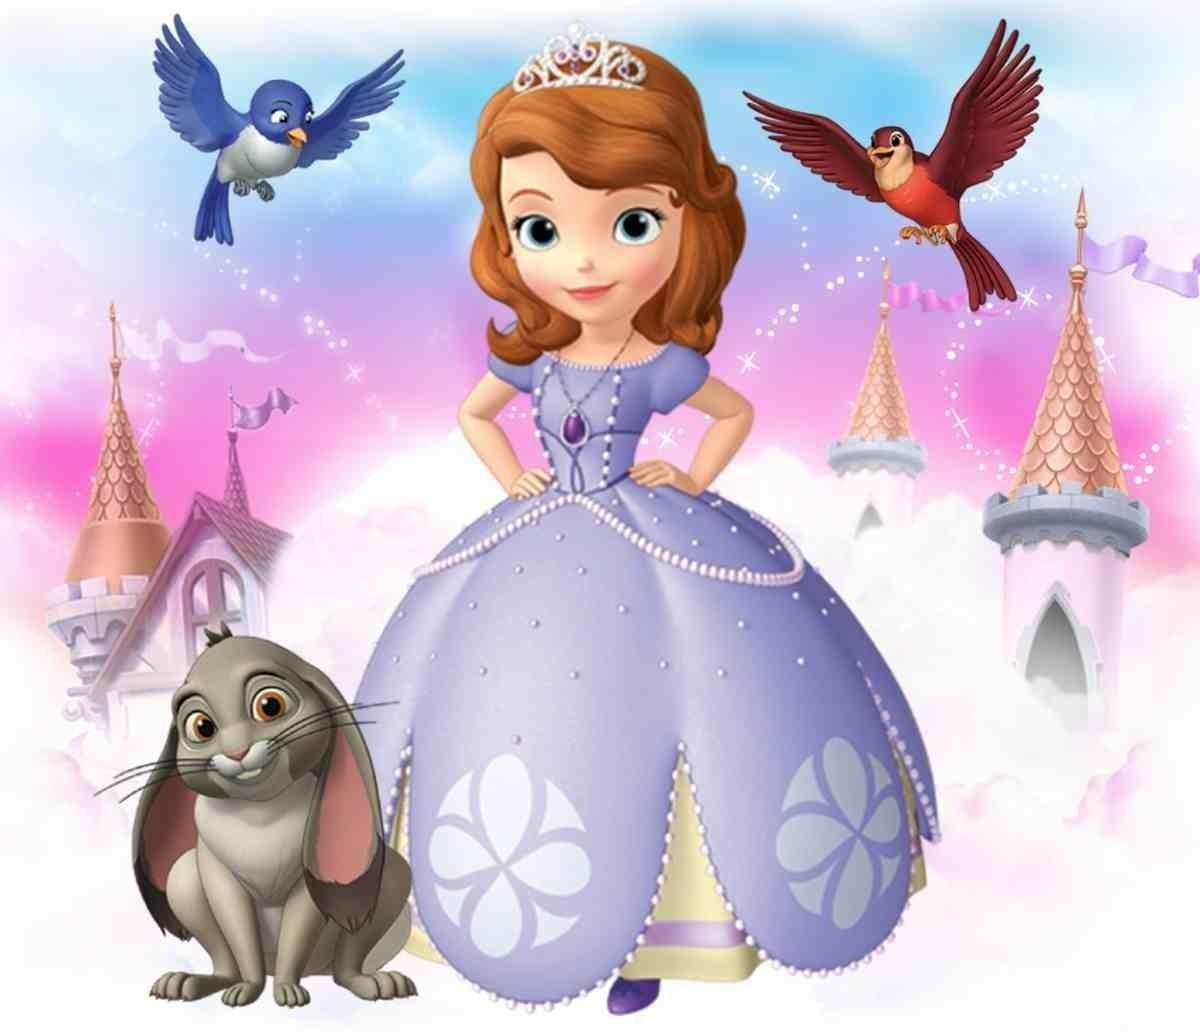 Sofia The First Wallpapers - Wallpaper Cave